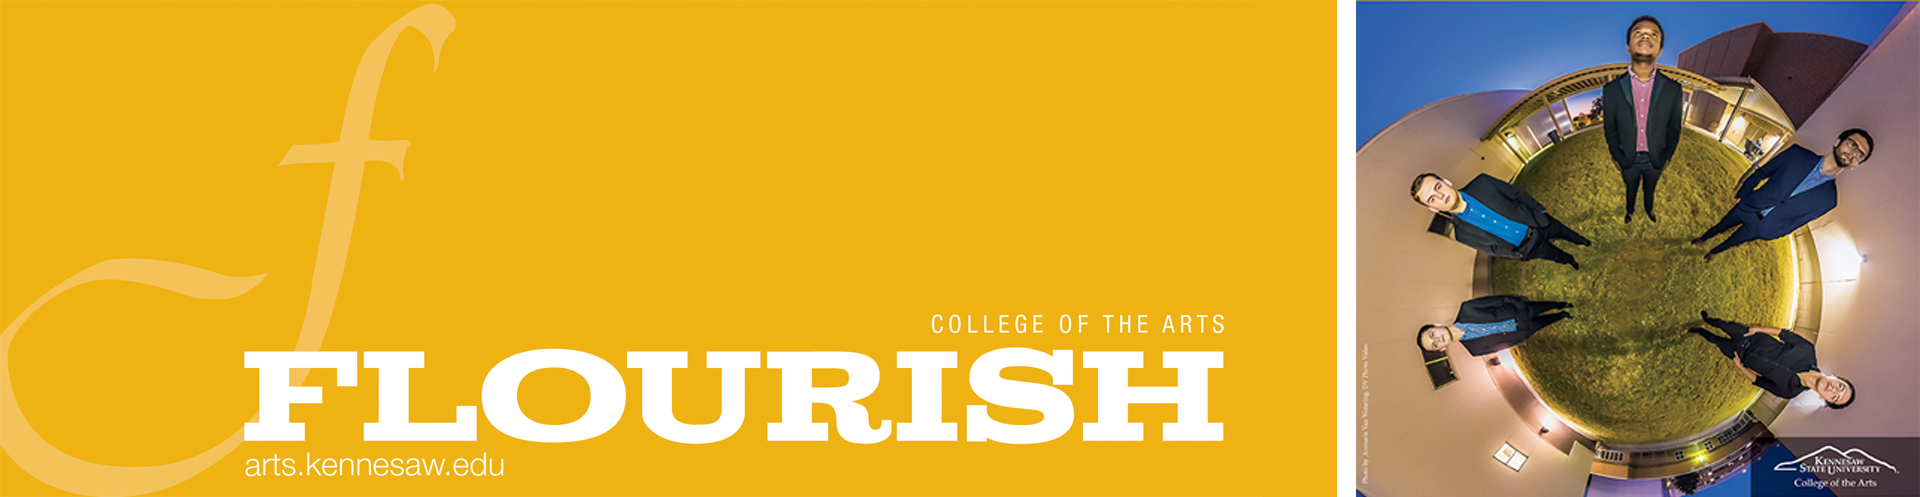 KSU College of the Arts Flourish Magazine